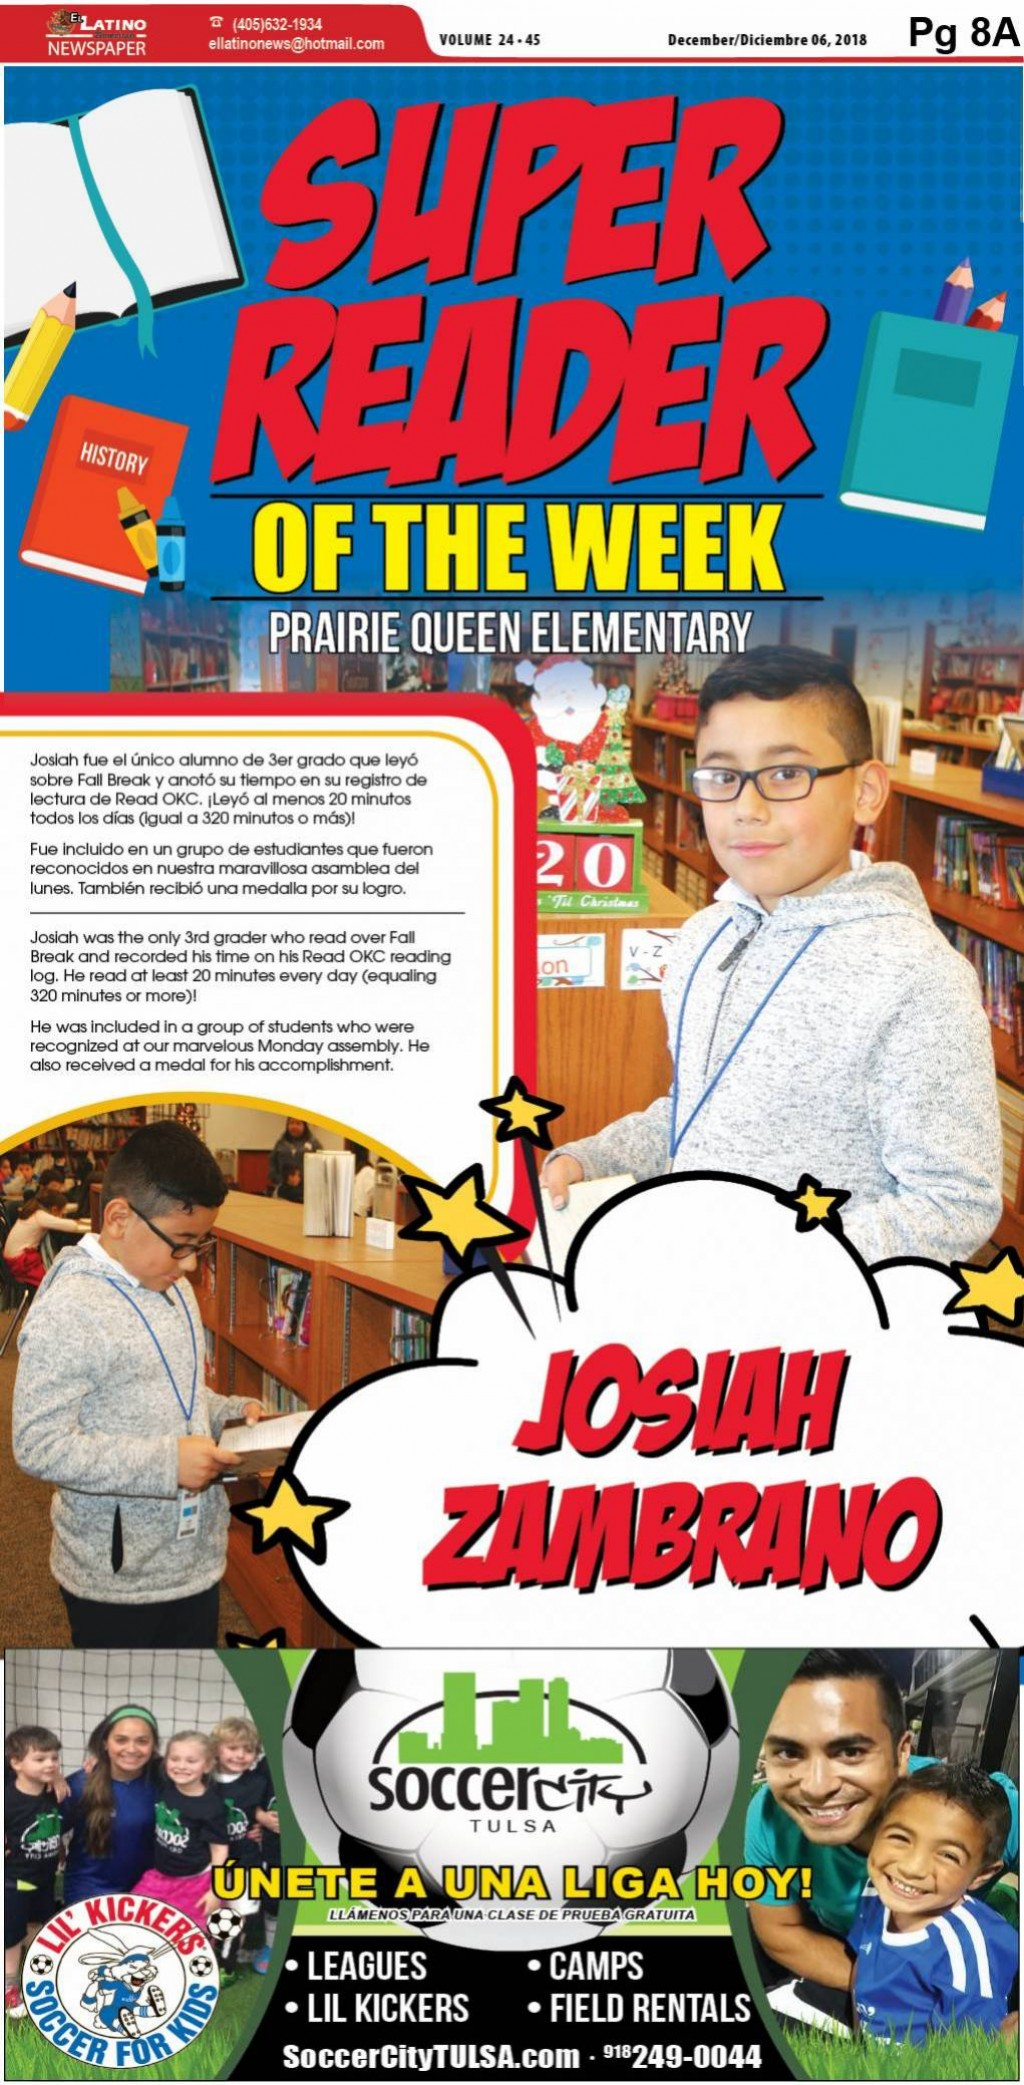 Super Reader of the Week: Josiah Zambrano